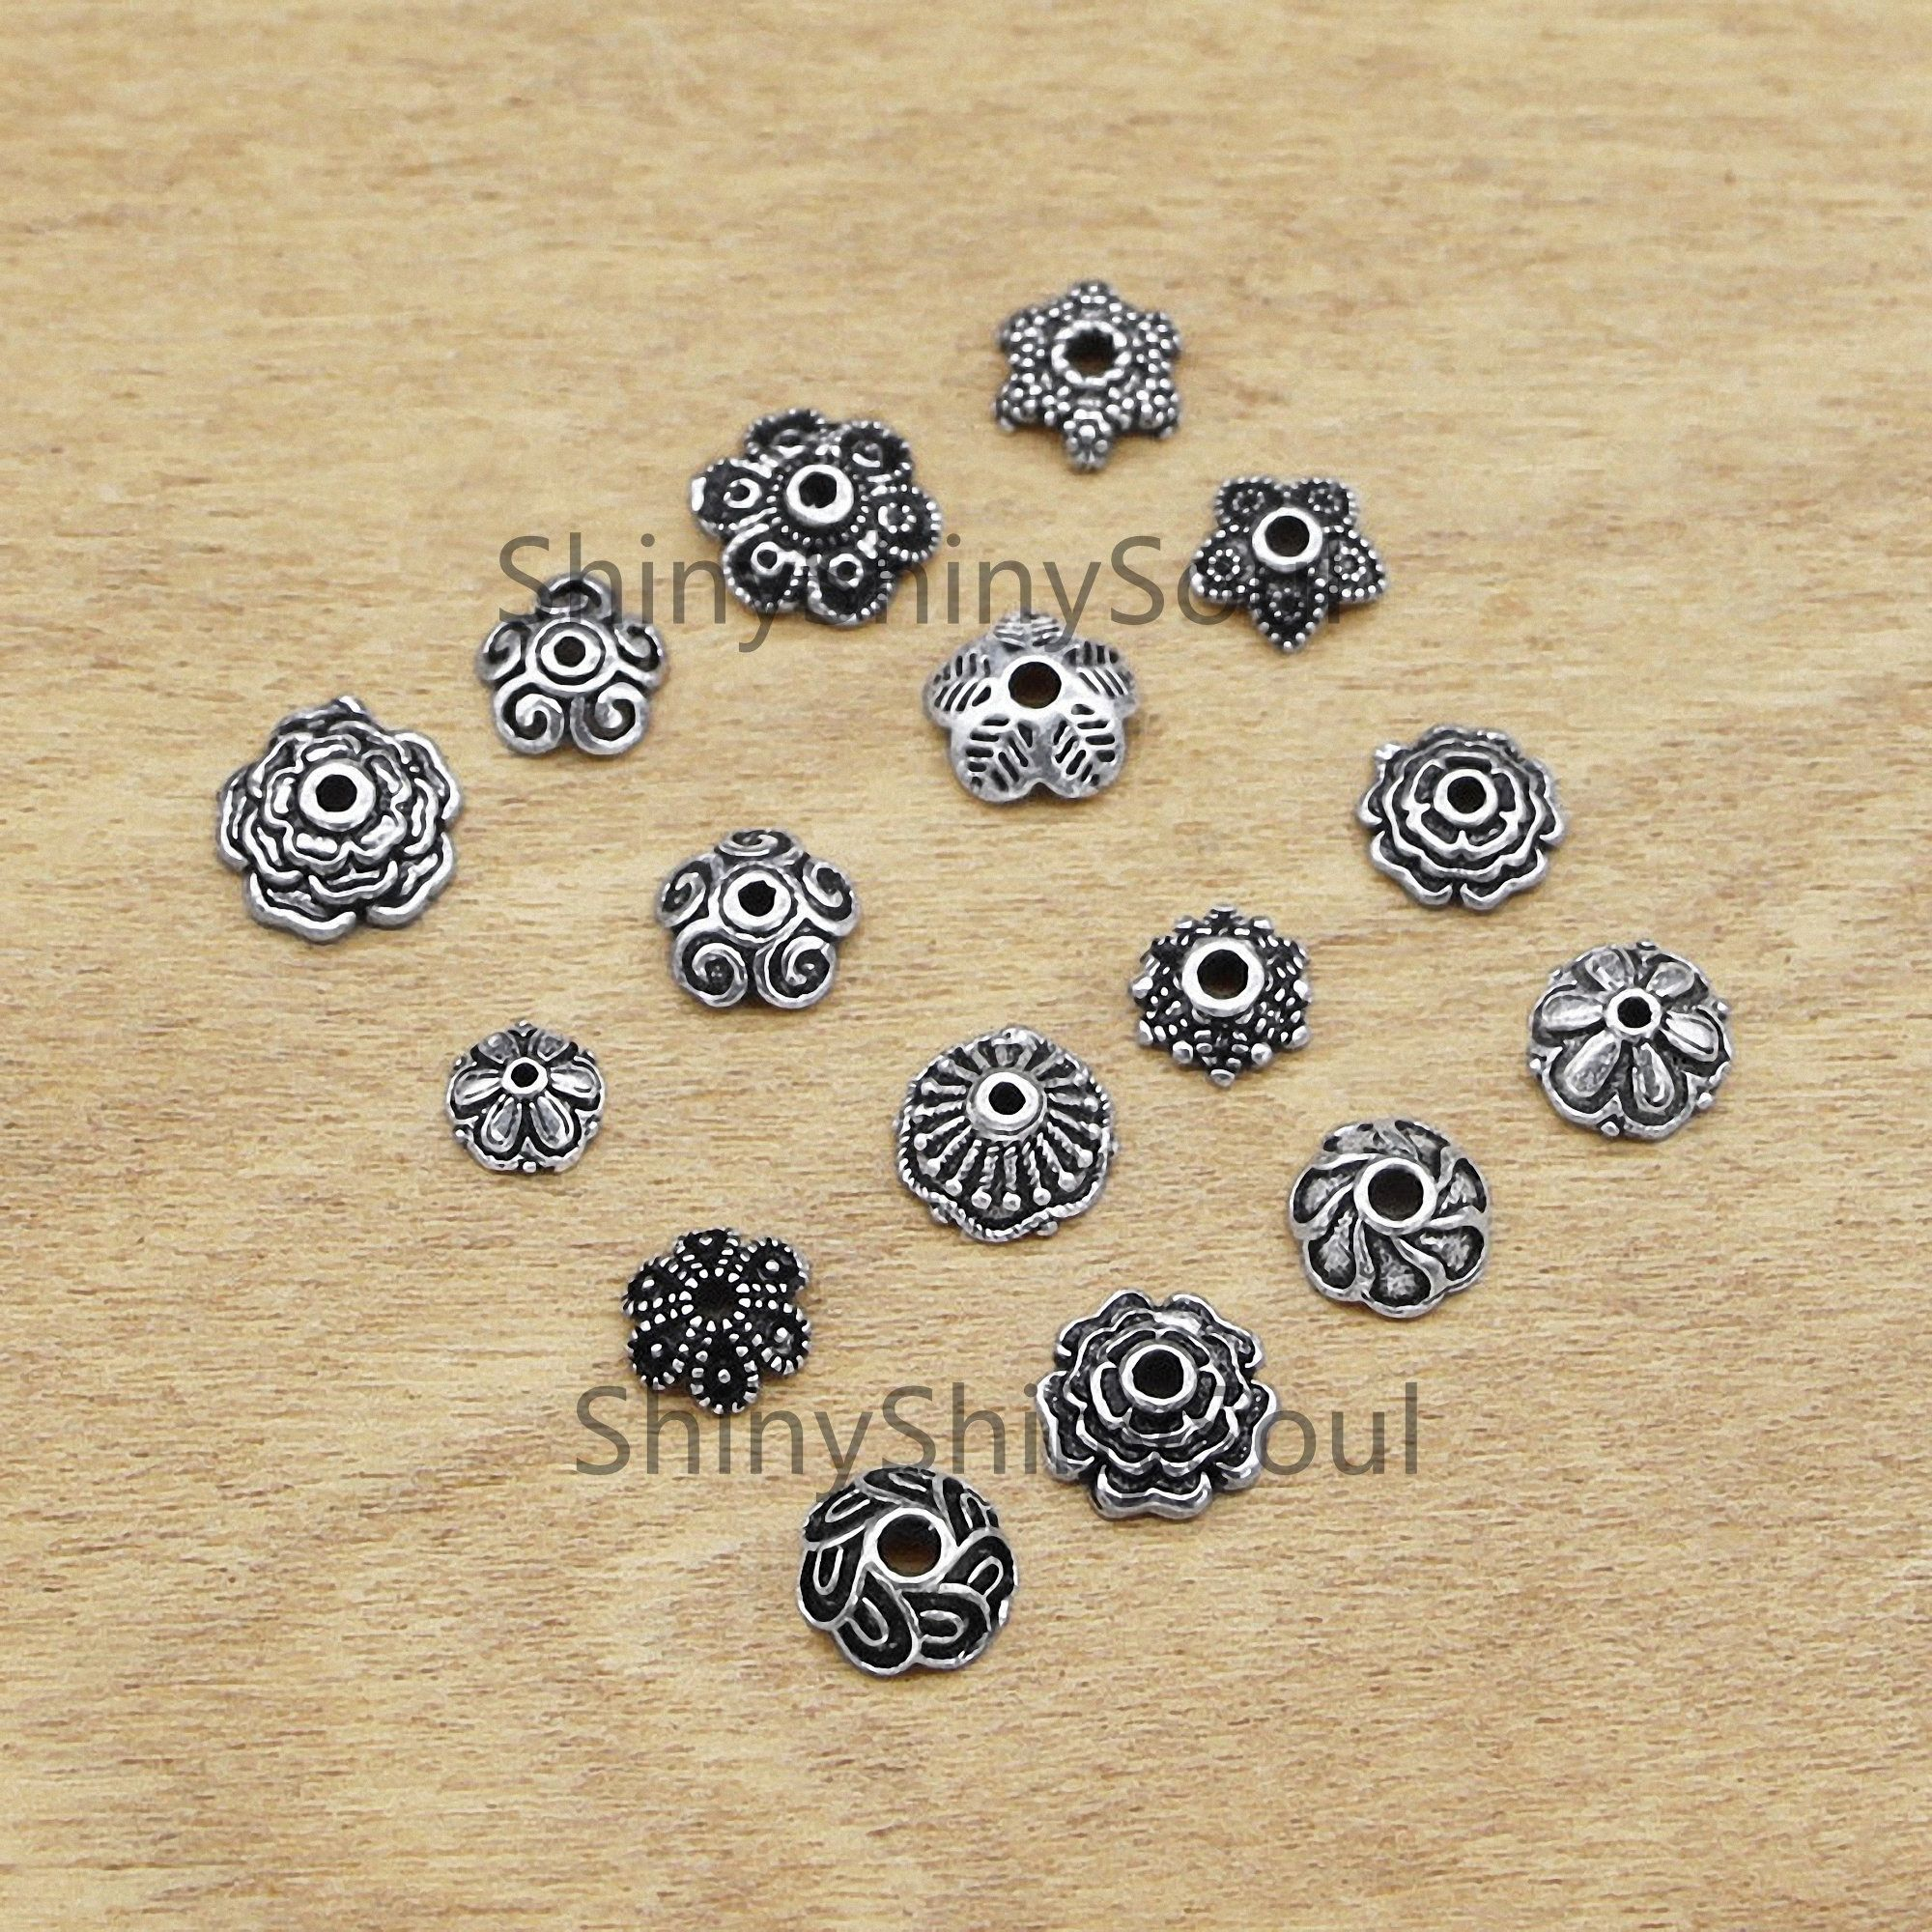 10PCS 7mm Sterling Silver Bead Caps,Silver Flower Caps,Gold Bead Caps,Bead Spacer